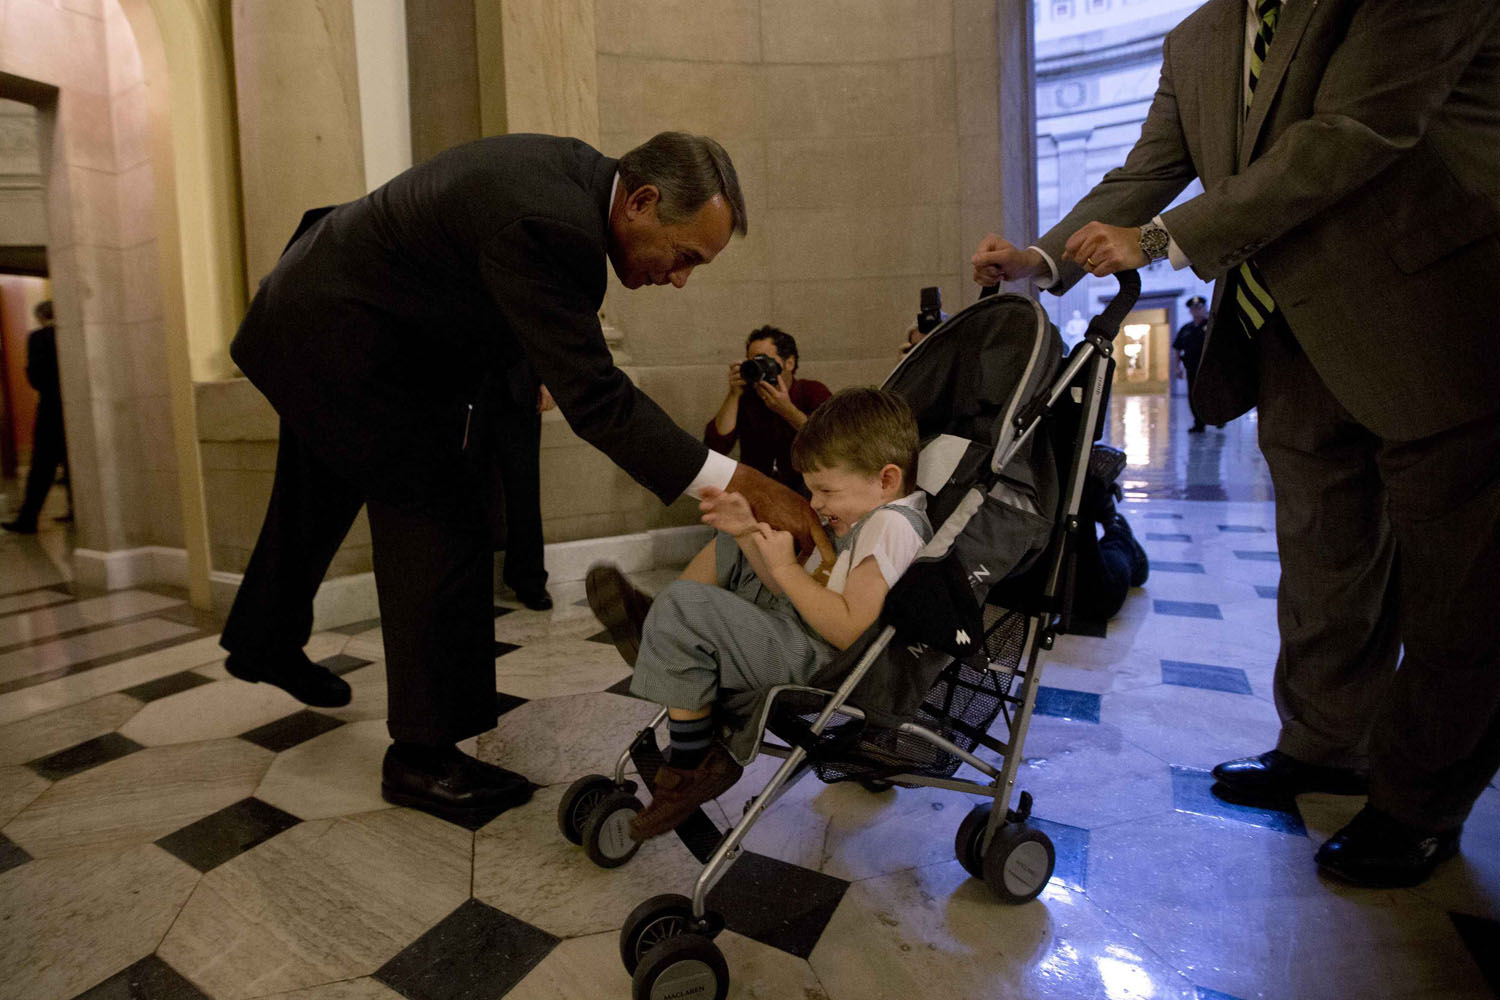 Oct. 10, 2013. U.S. House Speaker John Boehner (R-OH) (L) tickles John Griffin III, son of U.S. Rep. Tim Griffin (R-AR) (R), after a house vote on border safety and security in Washington.